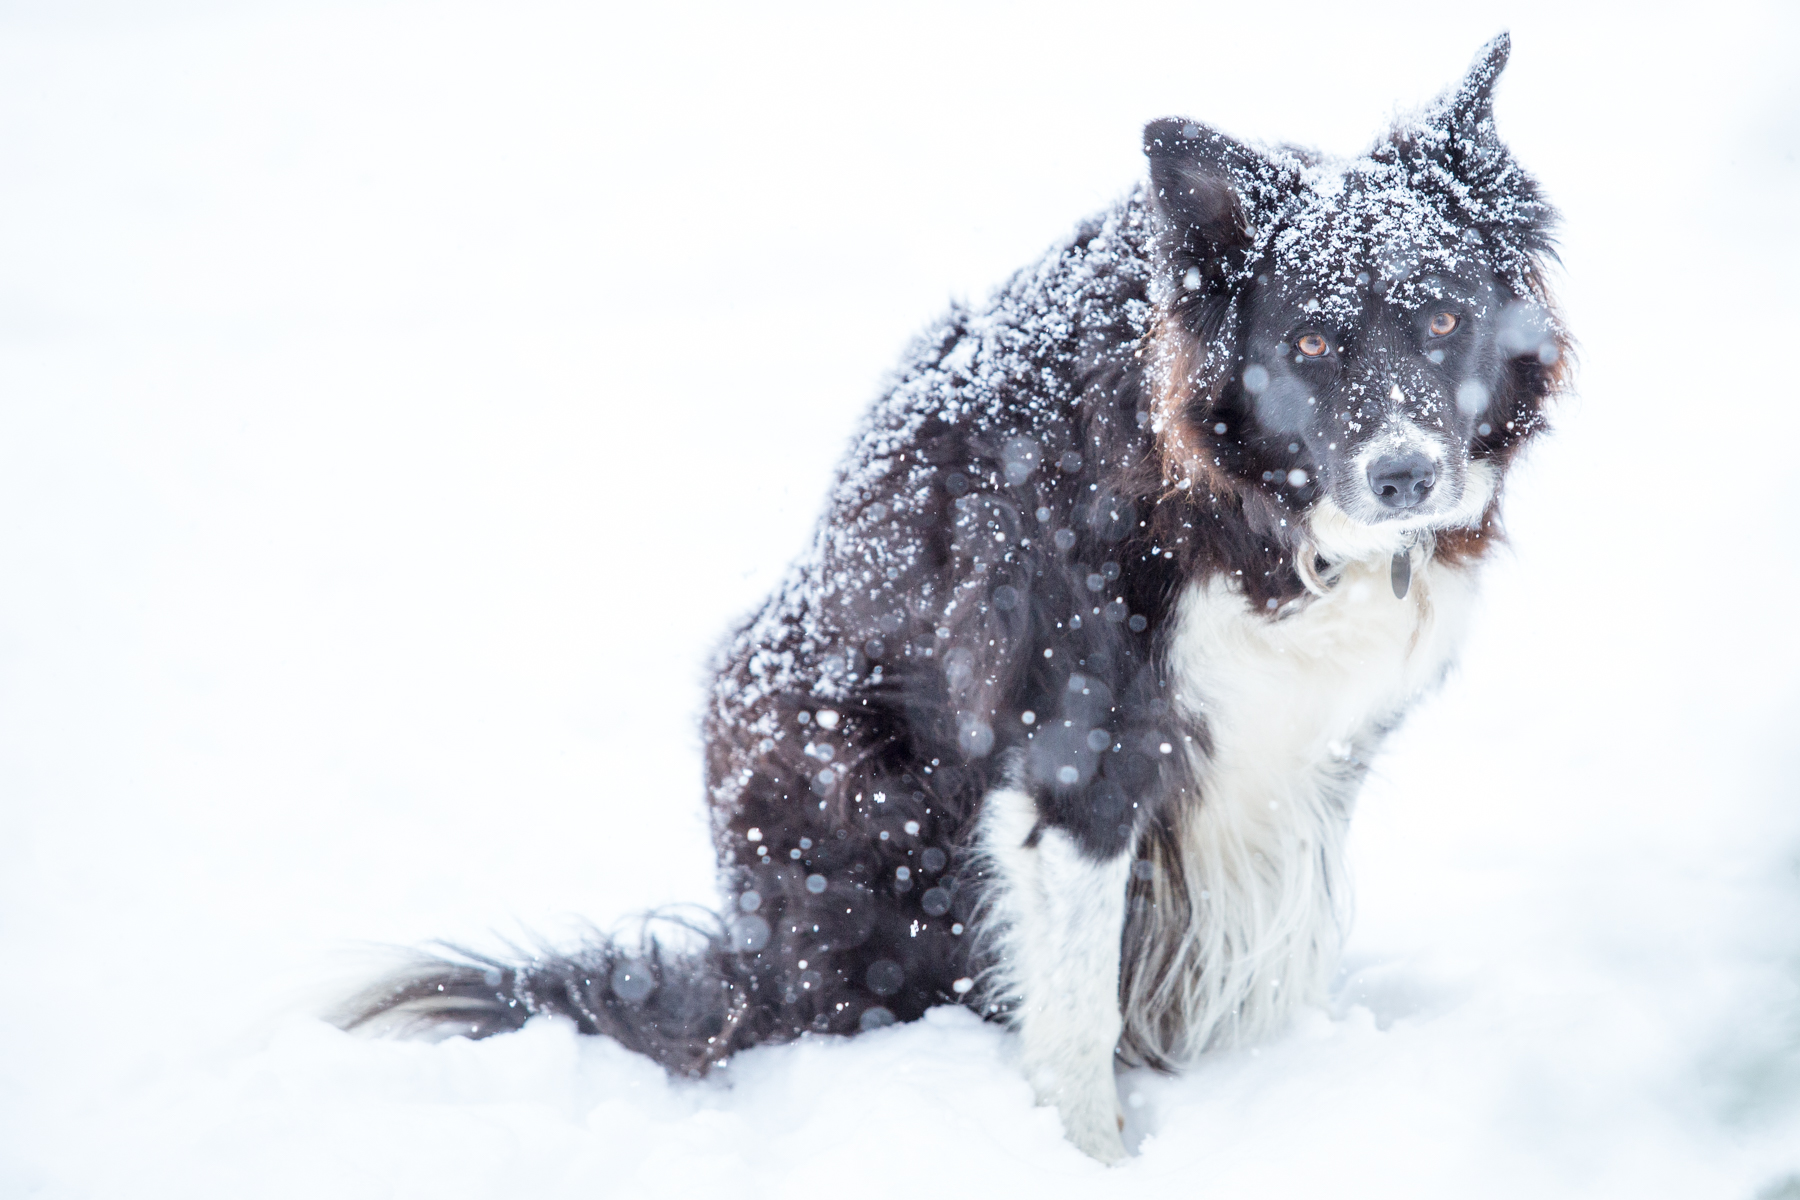 """Do not let him fool you - my neighbor's Border Collie, Gus, is a tough cookie who has shelter but prefers to stay outside in all types of weather. Speaking of cookies, that is his """"Mrs. Richer, can I get a cookie, please?"""" look - and yes, I give him treats."""